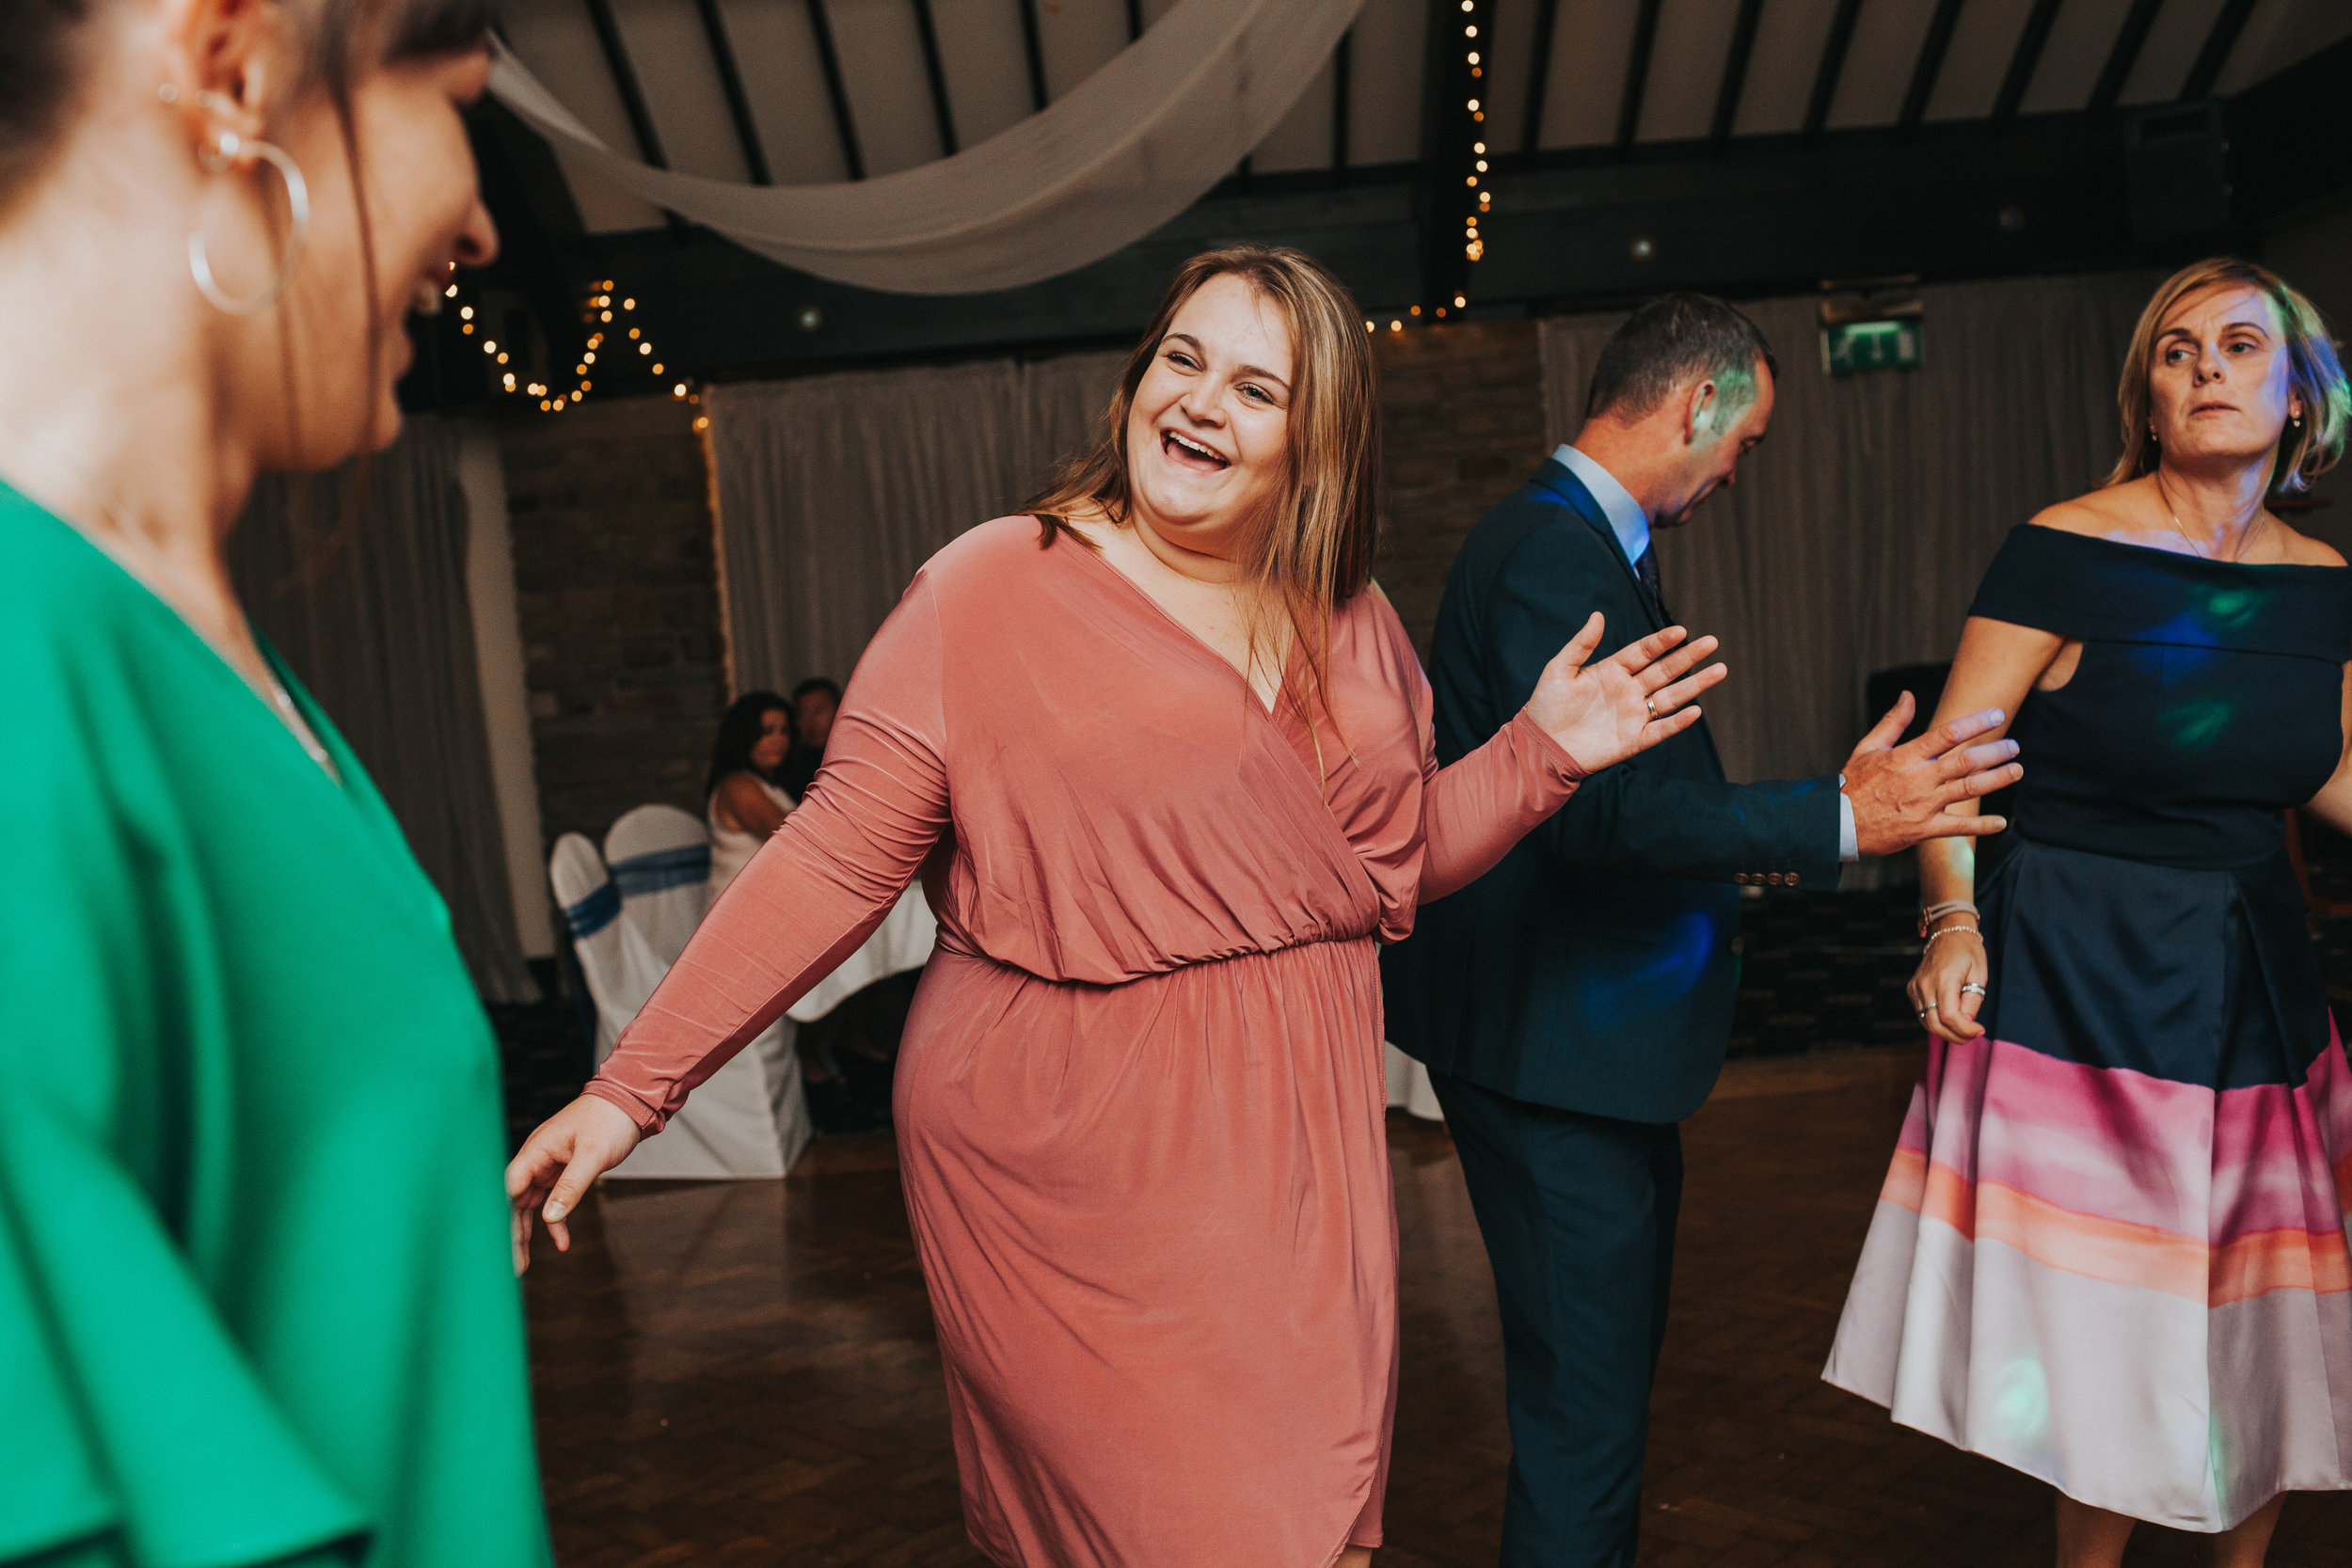 Wedding guest smiles while dancing.